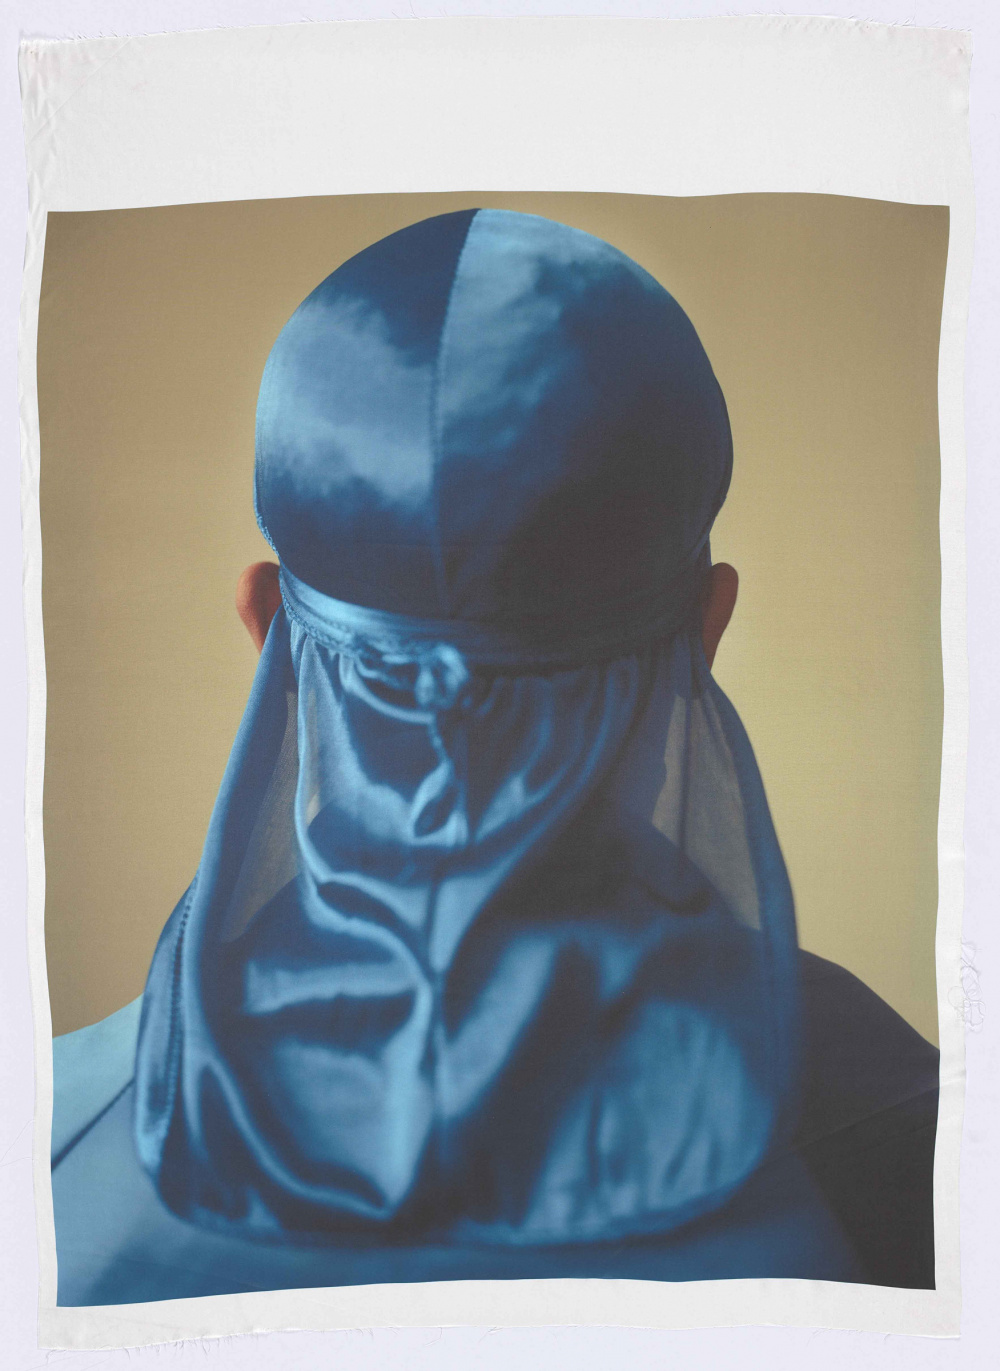 John Edmonds, Untitled (Du-Rag 3), 2017. Archival pigment print on Japanese silk, 150.5 x 107.5 cm. Art Gallery of Ontario, Purchased with the assistance of Art Toronto 2017 Opening Night Preview, 2017. © John Edmonds 2017/42.